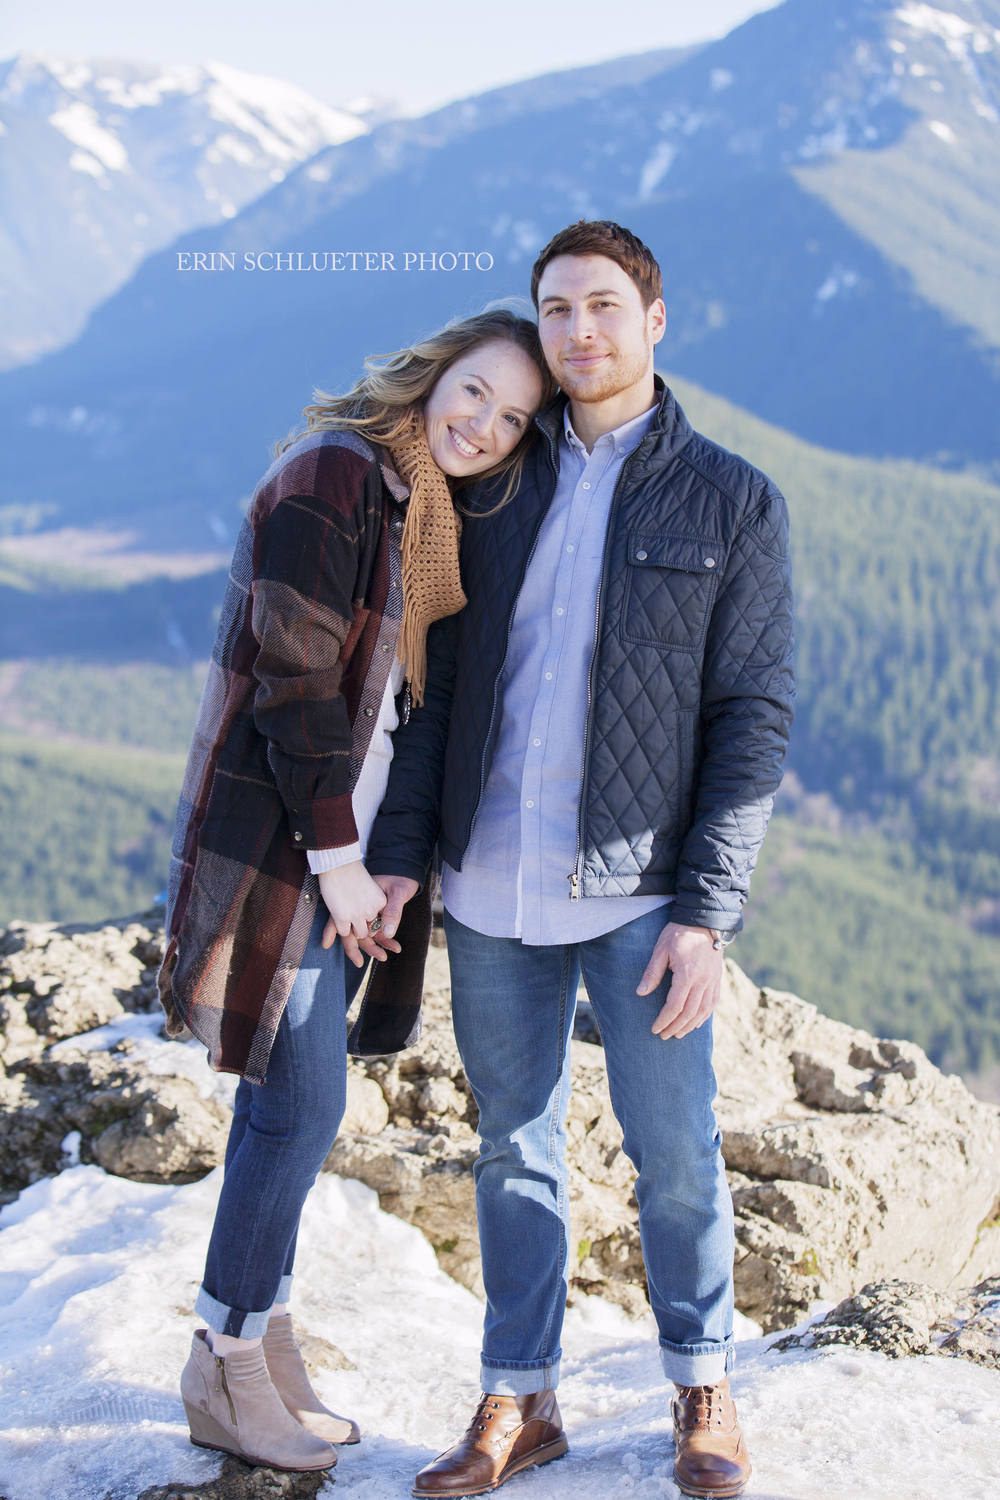 Rattlesnake Ledge is arguably one of the most popular hikes in the Seattle area. It's a short two mile hike that rewards you with a stunning panoramic view at the end of the hike.  It's only a few miles from North Bend, which makes its easy to access, and is one of my favorite places in Washington for engagement photos.